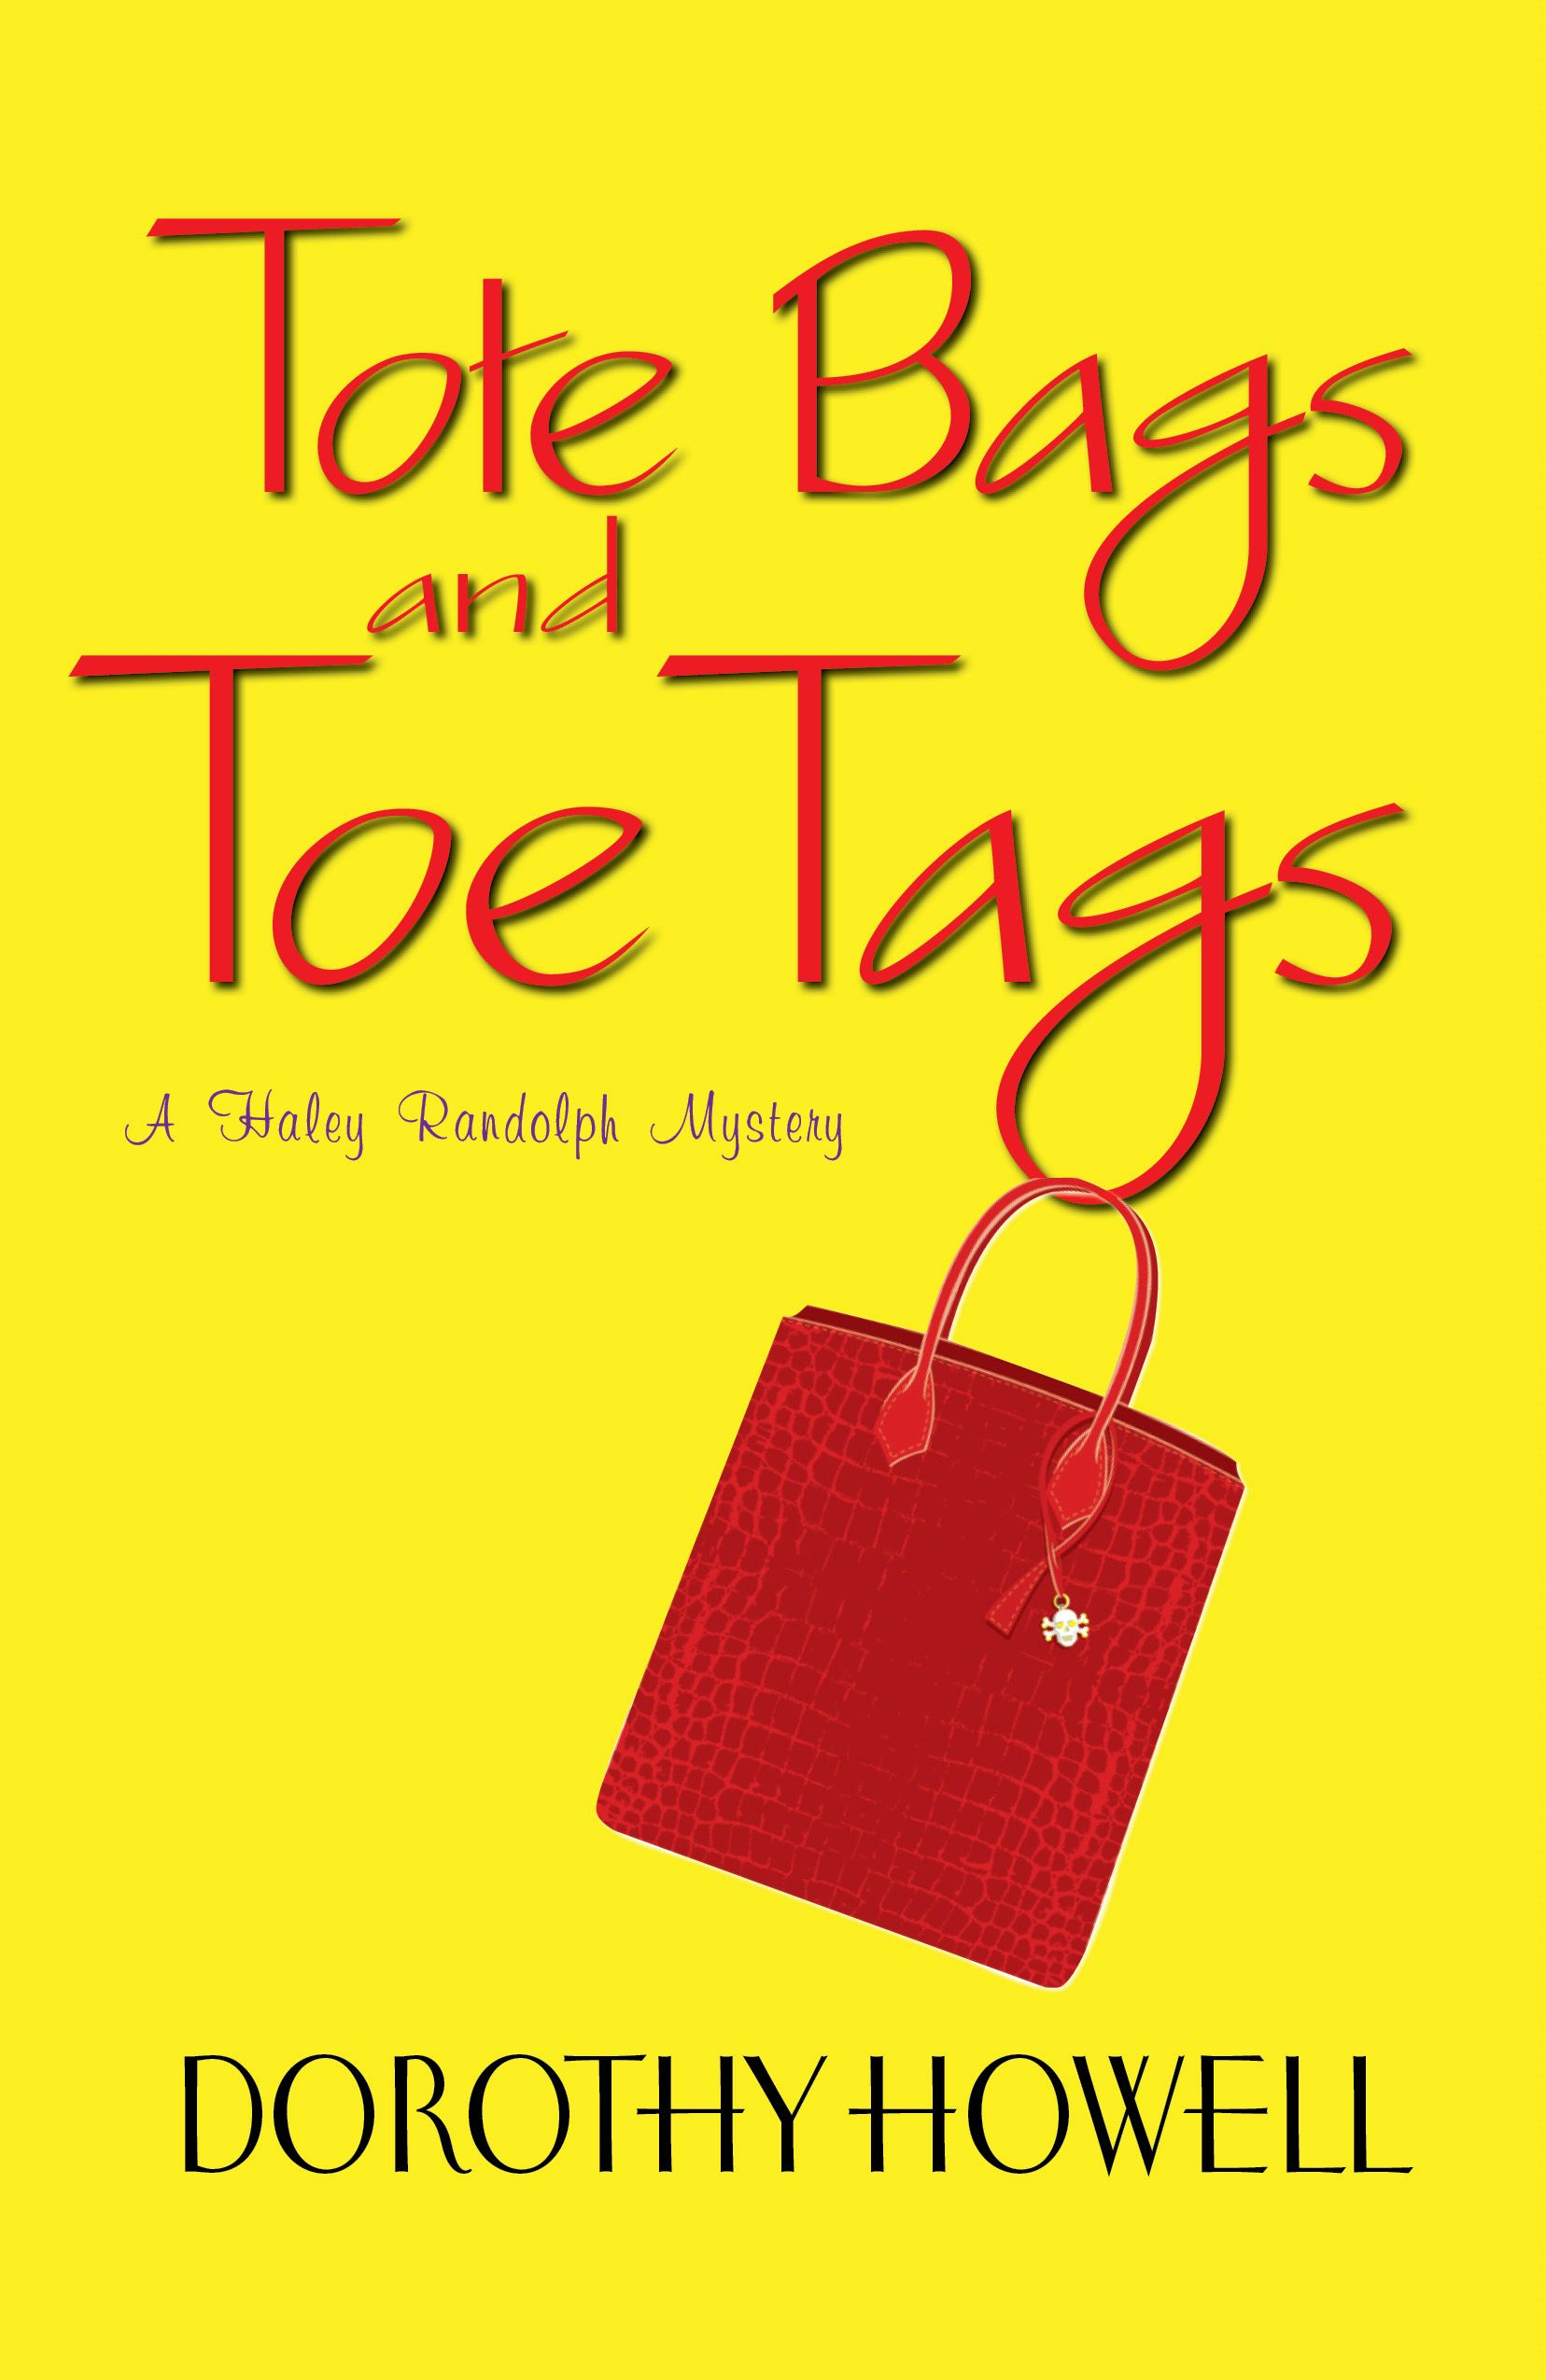 Tote Bags and Toe Tags By: Dorothy Howell